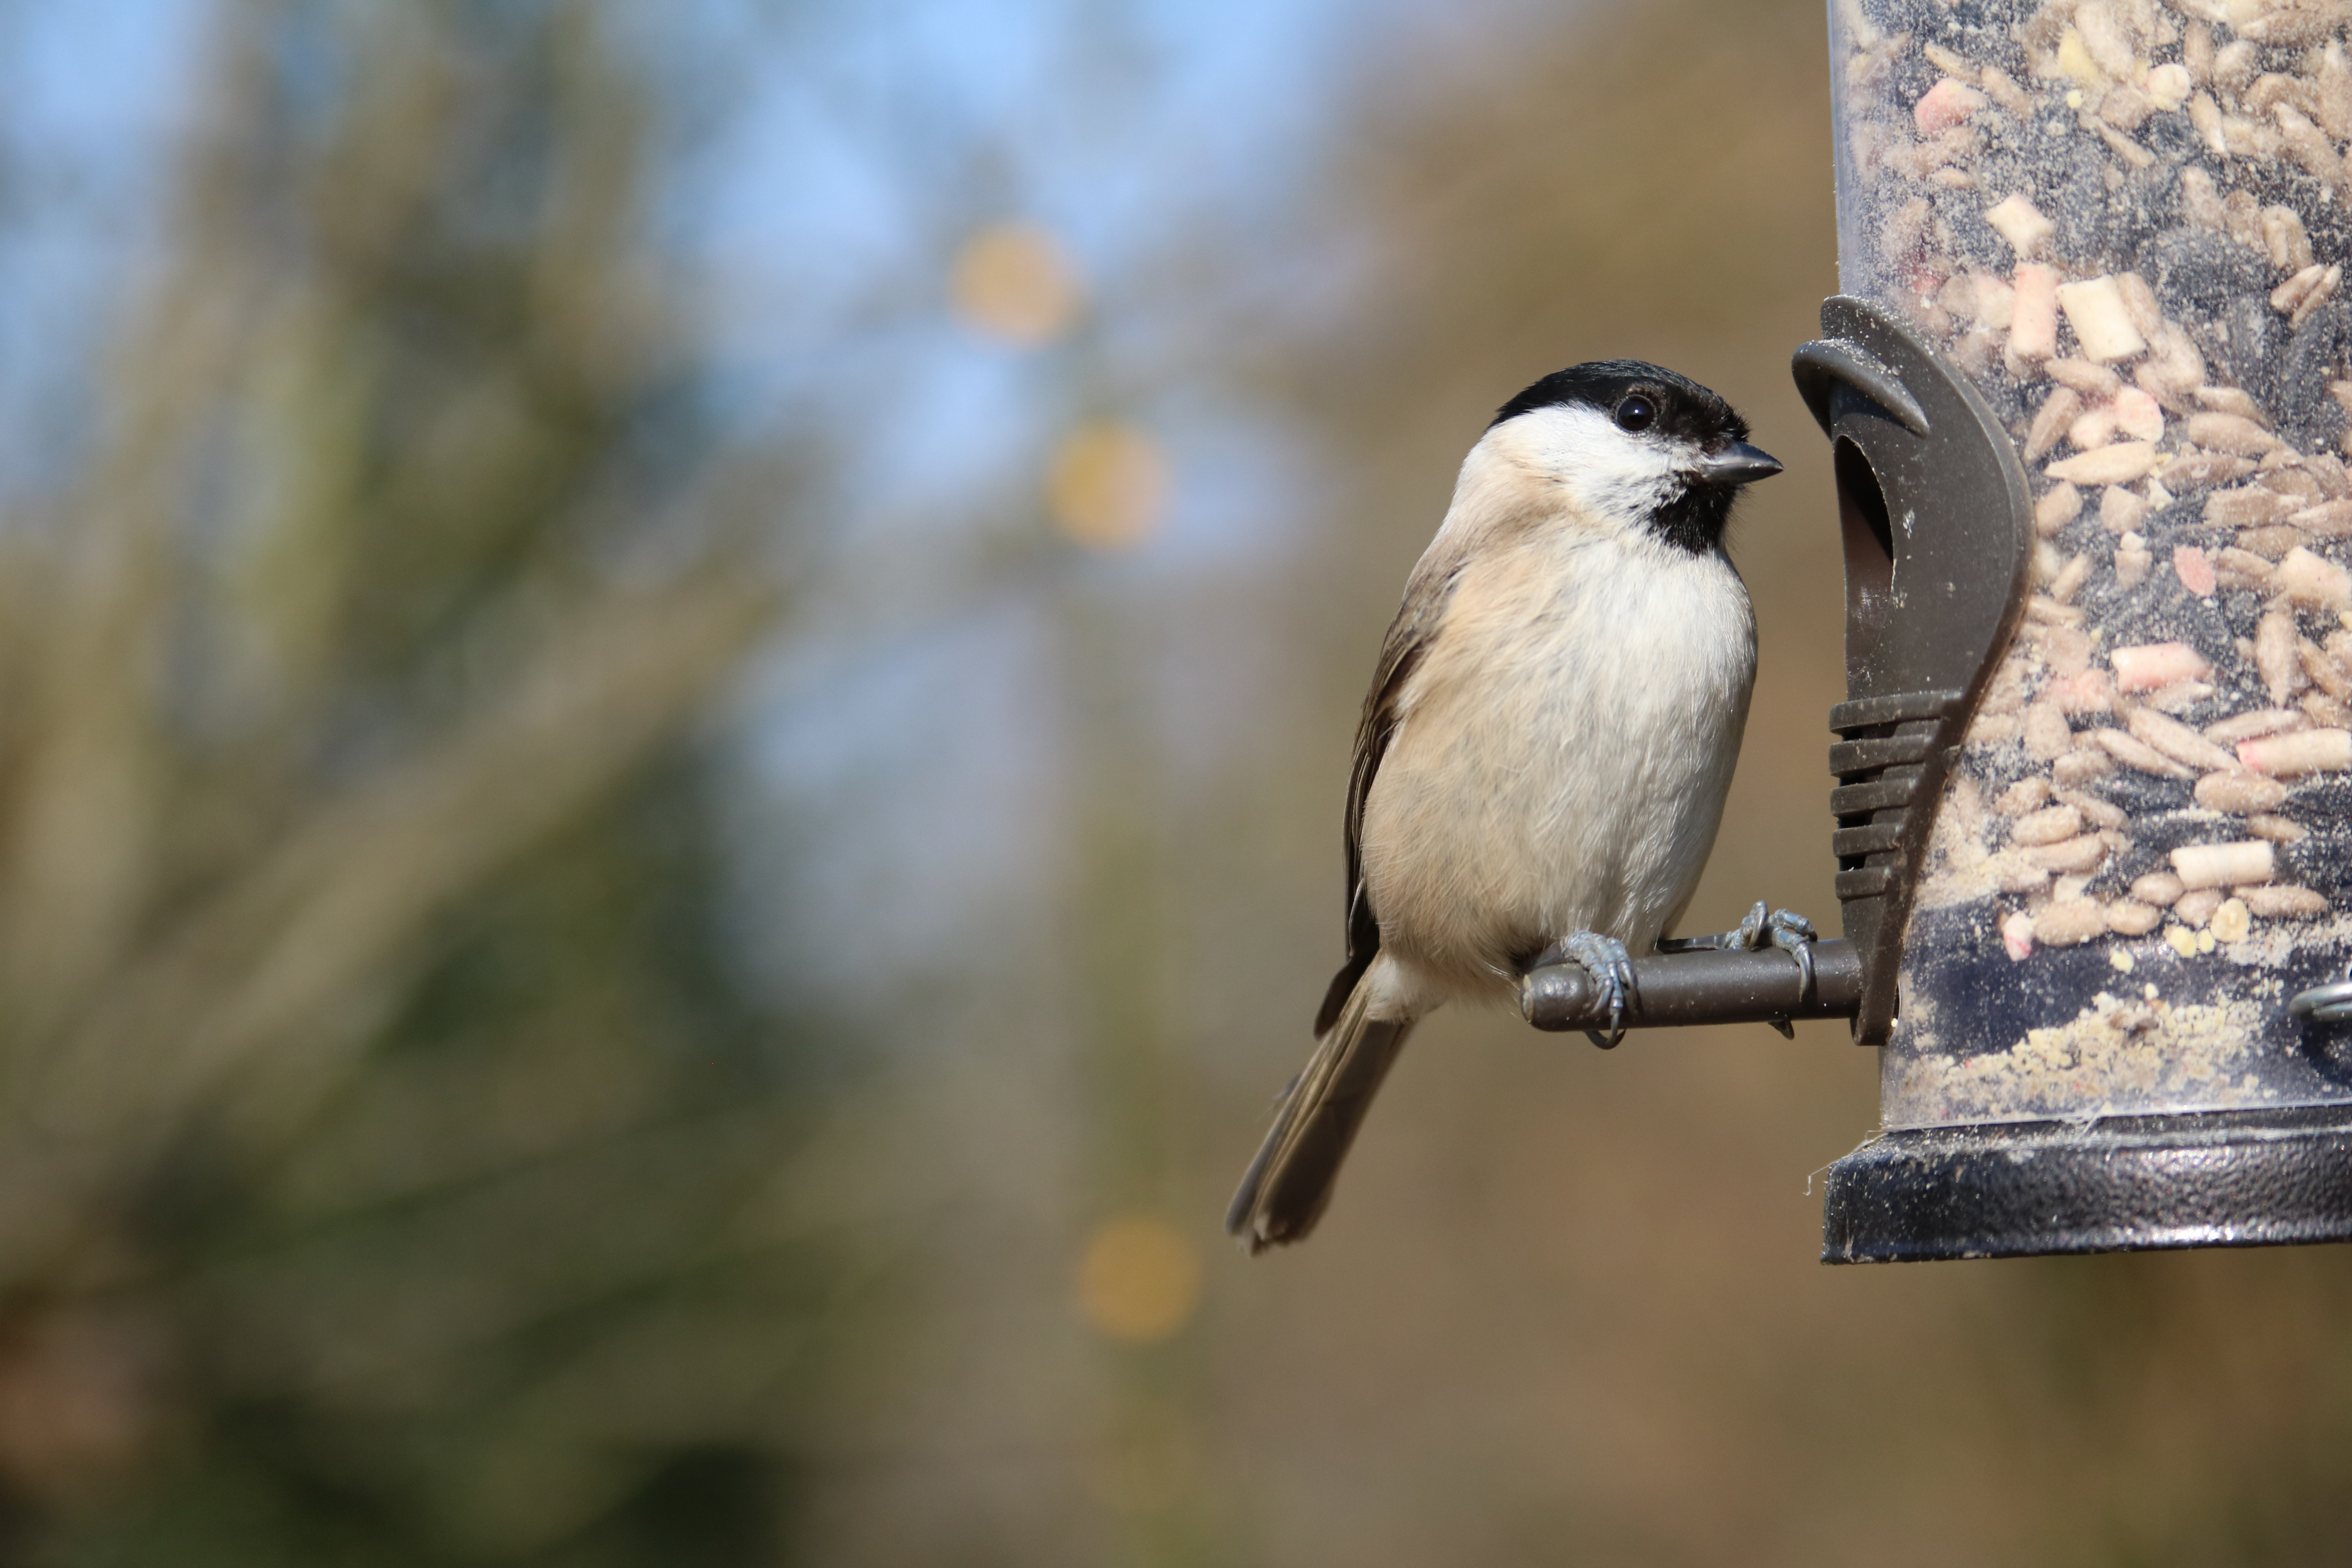 Don't forget to feed the birds this winter!